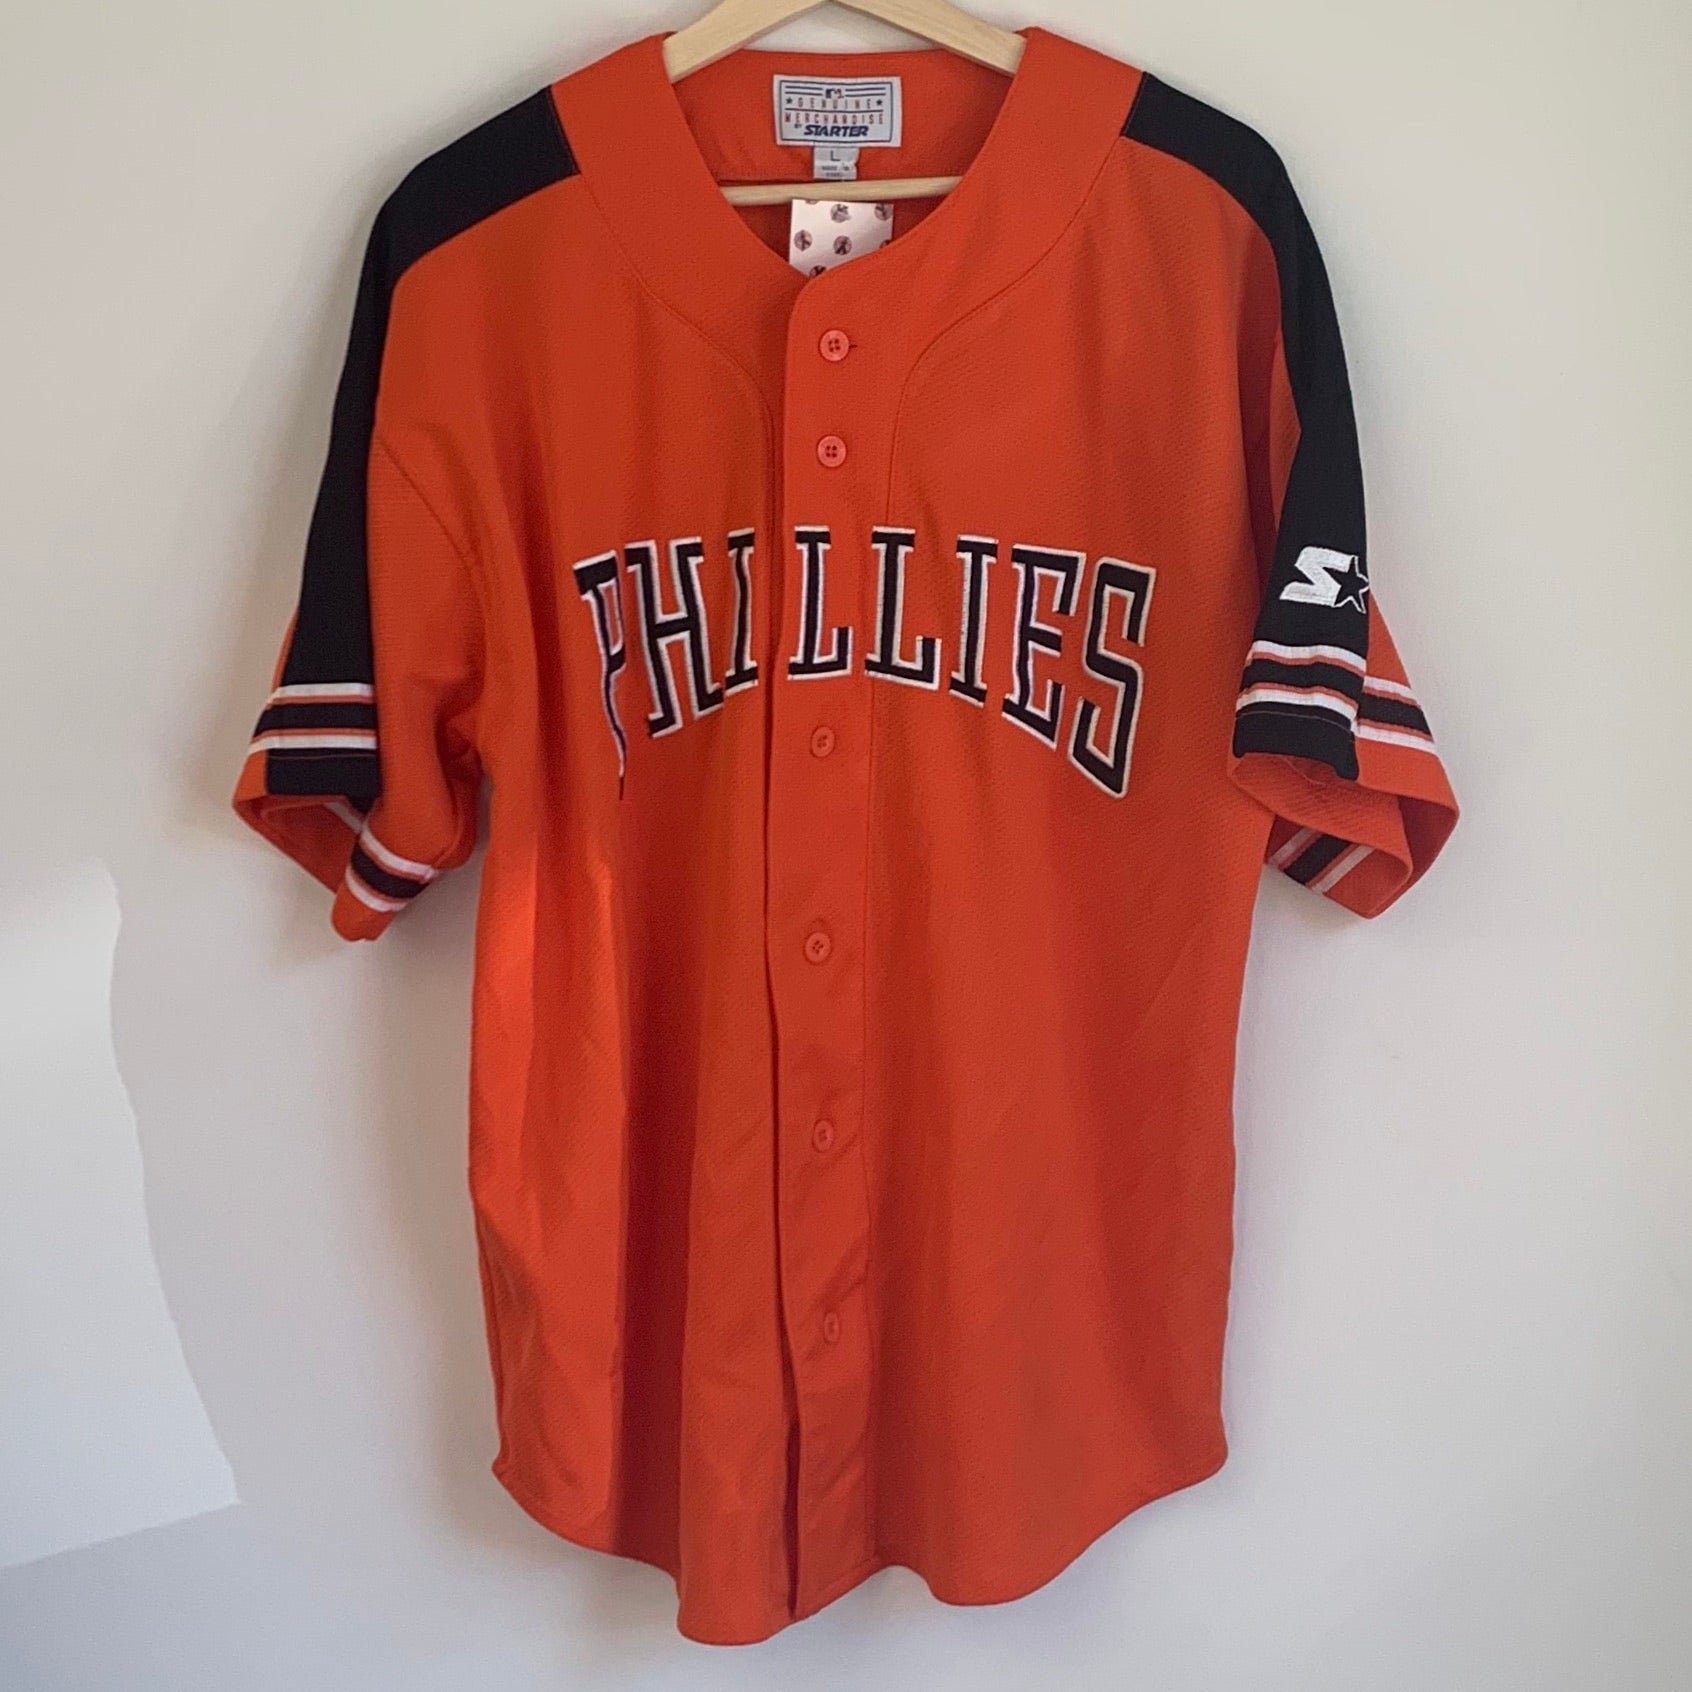 Starter Philadelphia Phillies Orange Baseball Jersey